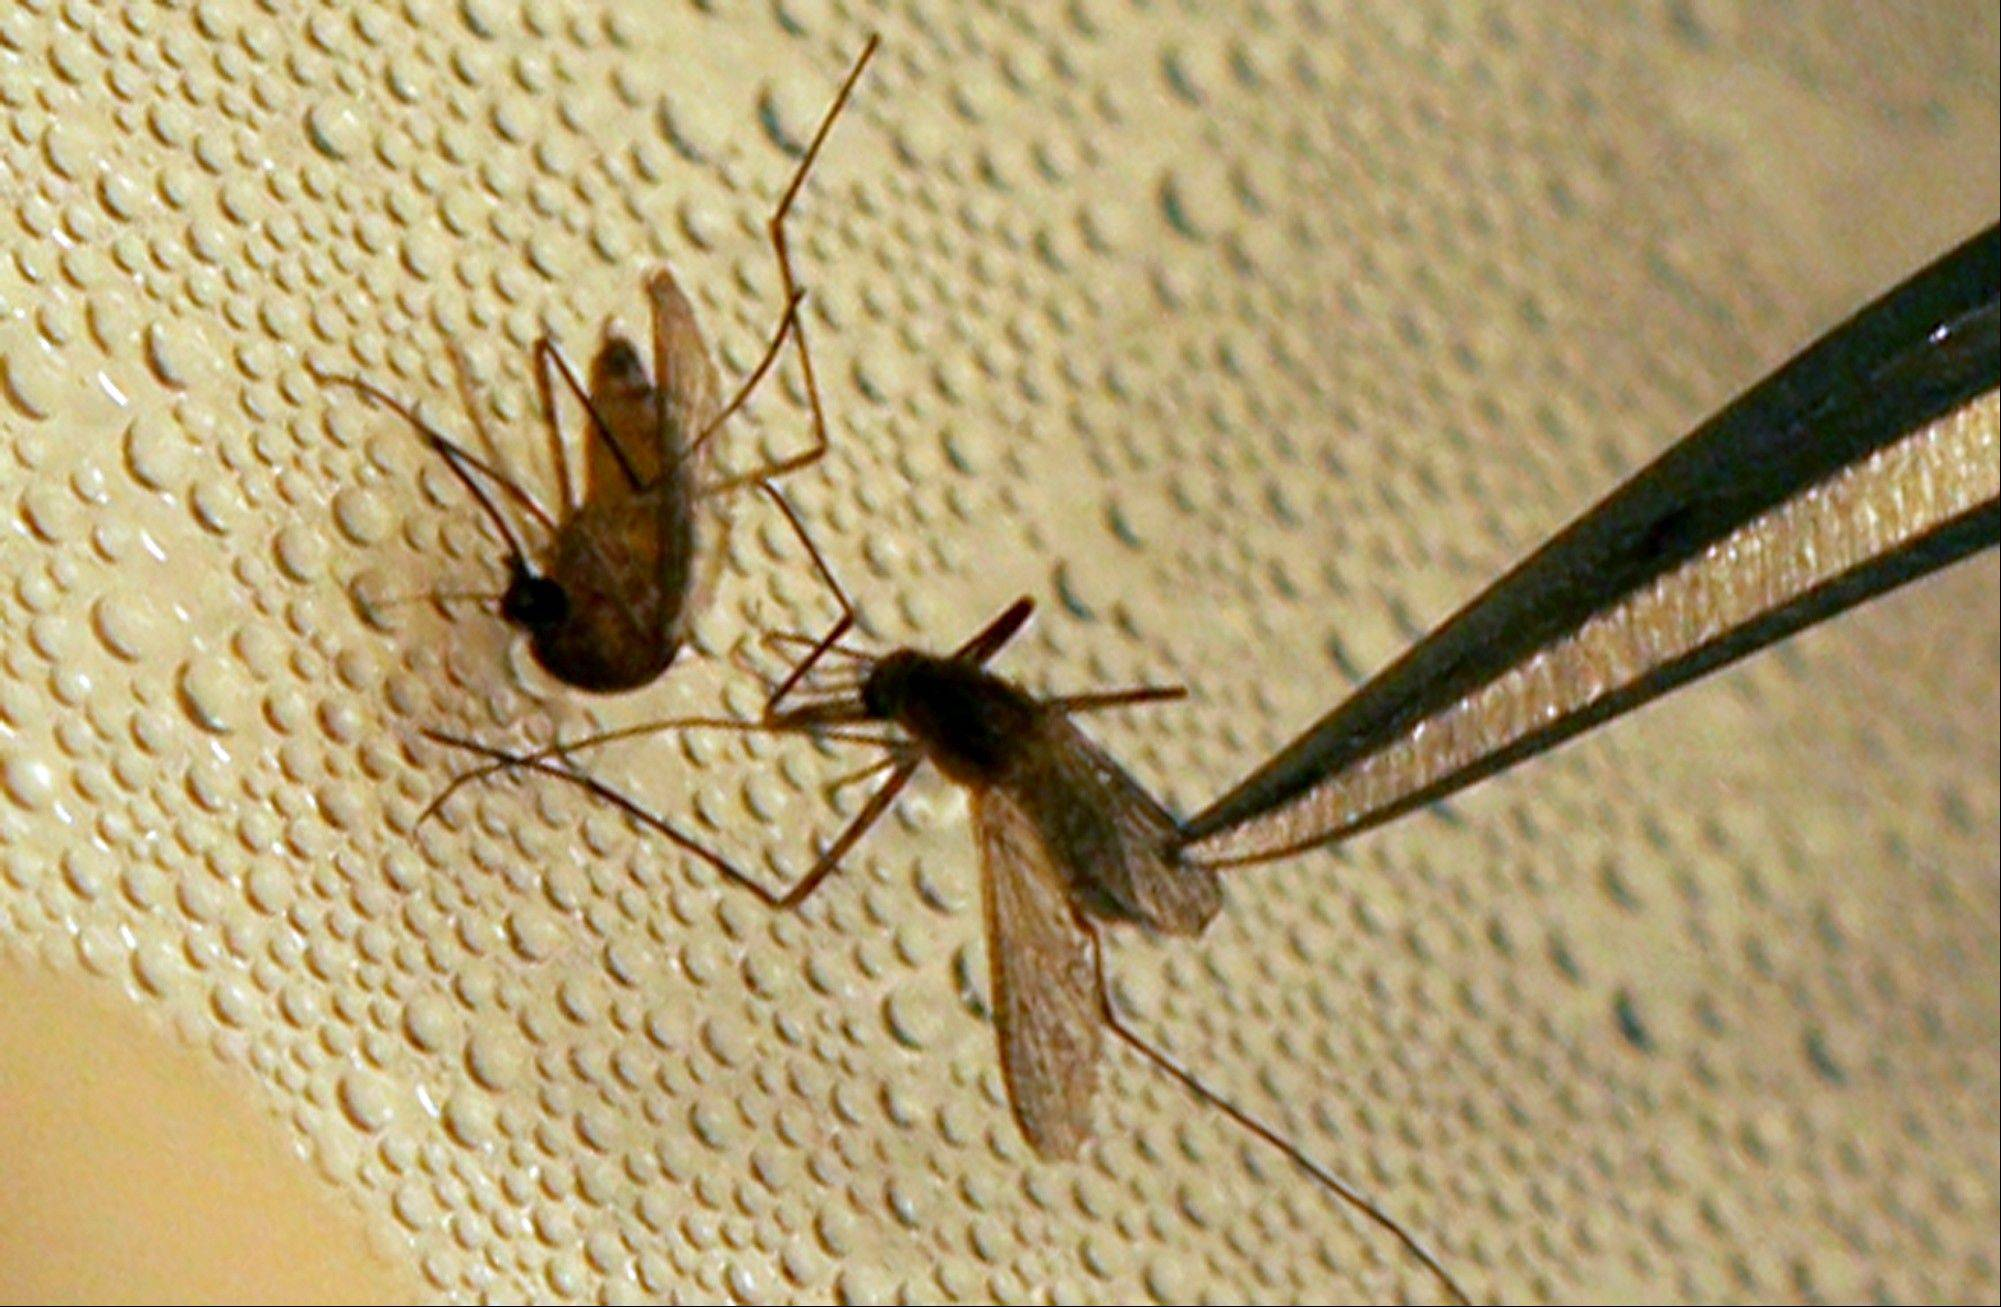 A mosquito is sorted according to species and gender before testing for West Nile virus at the Dallas County mosquito lab in Dallas. Scientists have been working on mathematical models to predict outbreaks for decades and have long factored in the weather.